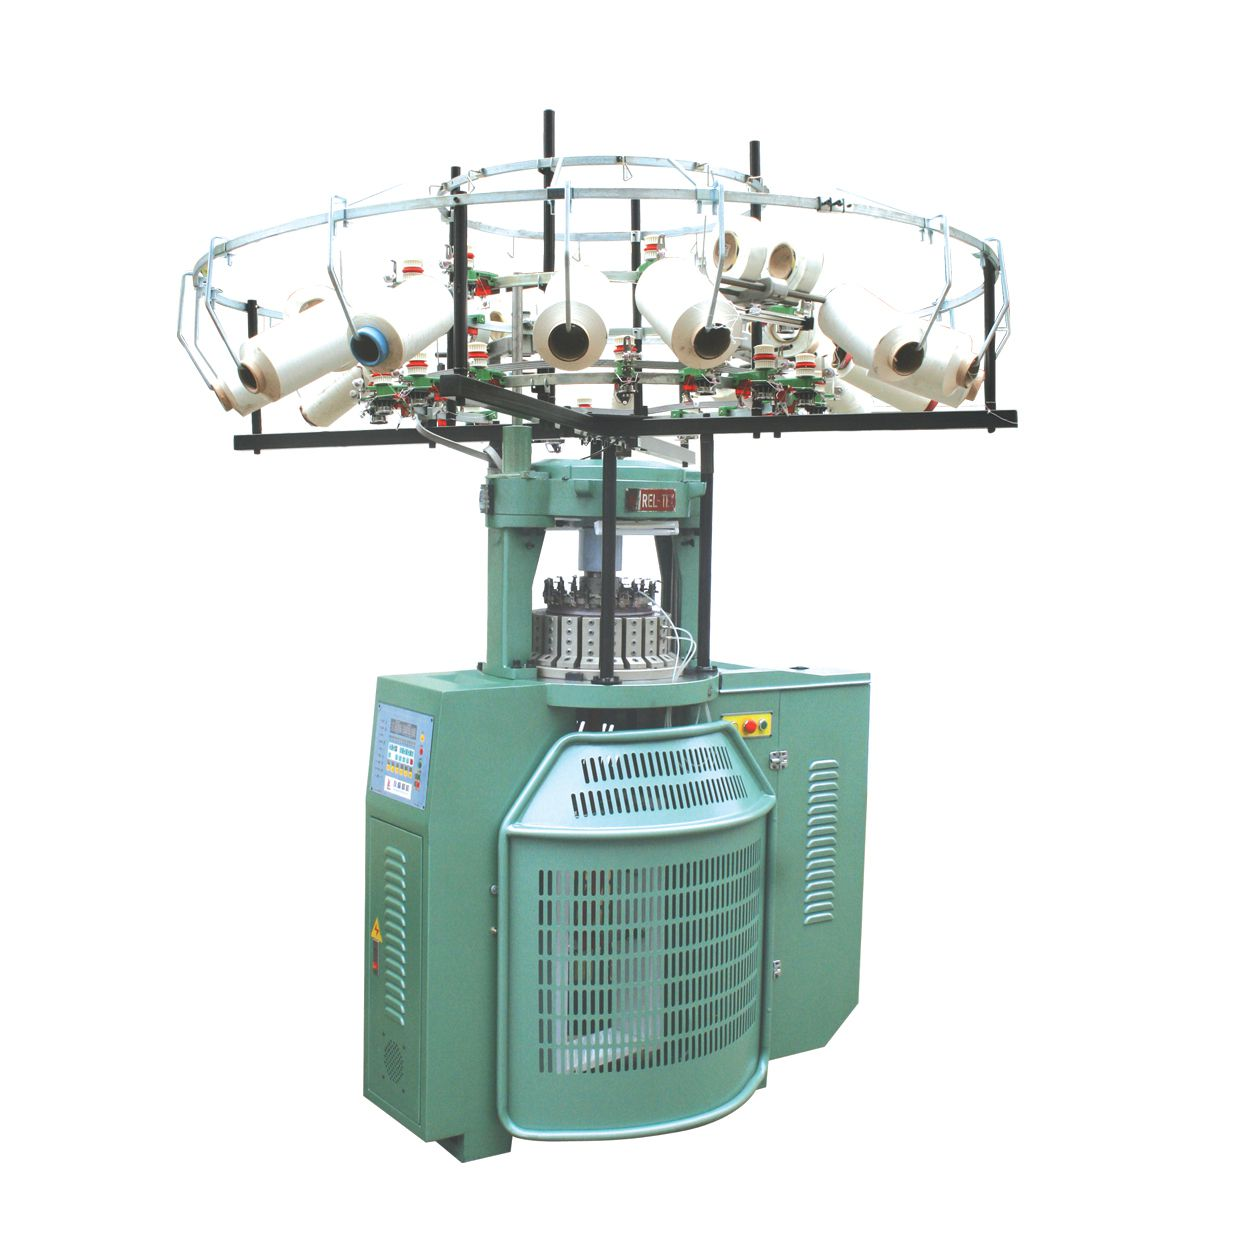 Knitting Machines : High speed double jersey circular knitting machine for